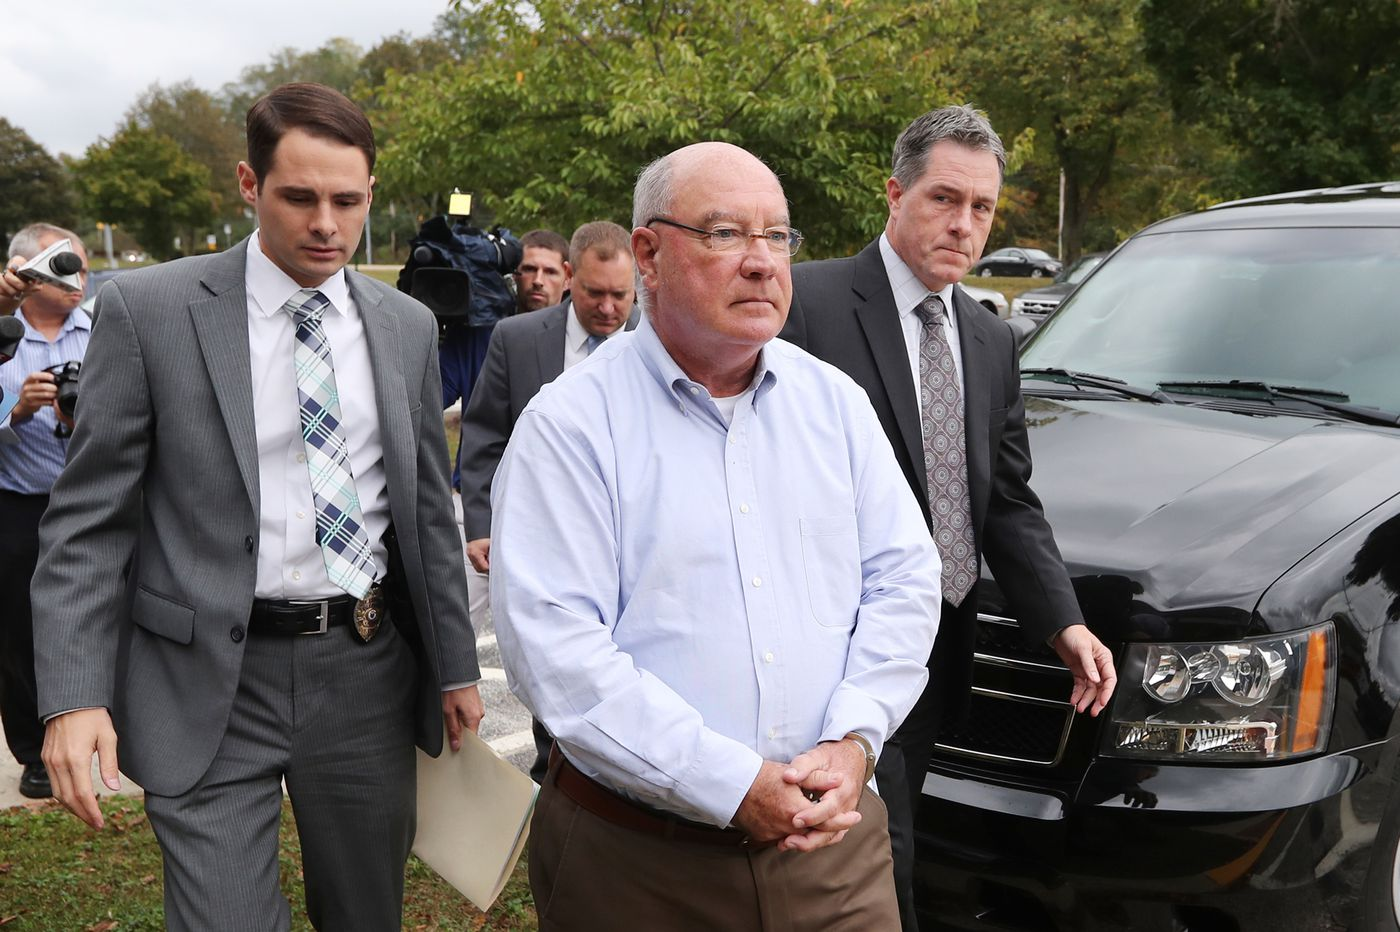 Ex-Radnor Township board chair Philip Ahr sentenced to more than 12 years in child porn case